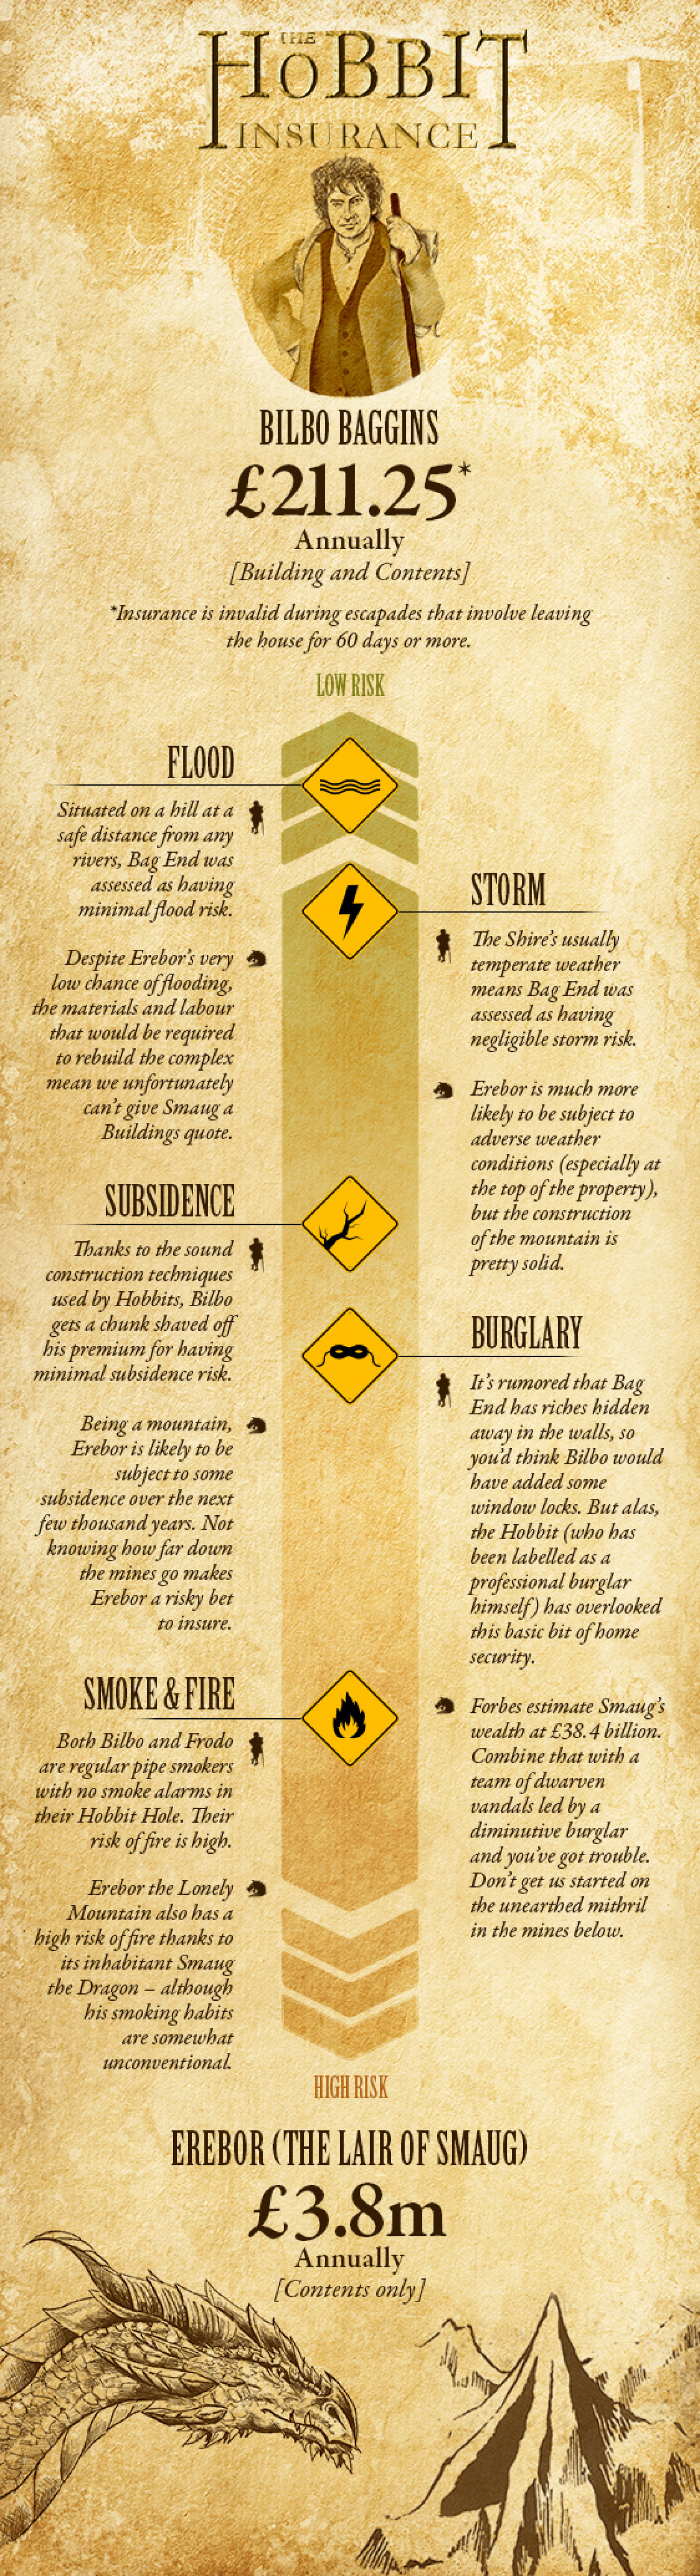 The Hobbit Insurance Infographic